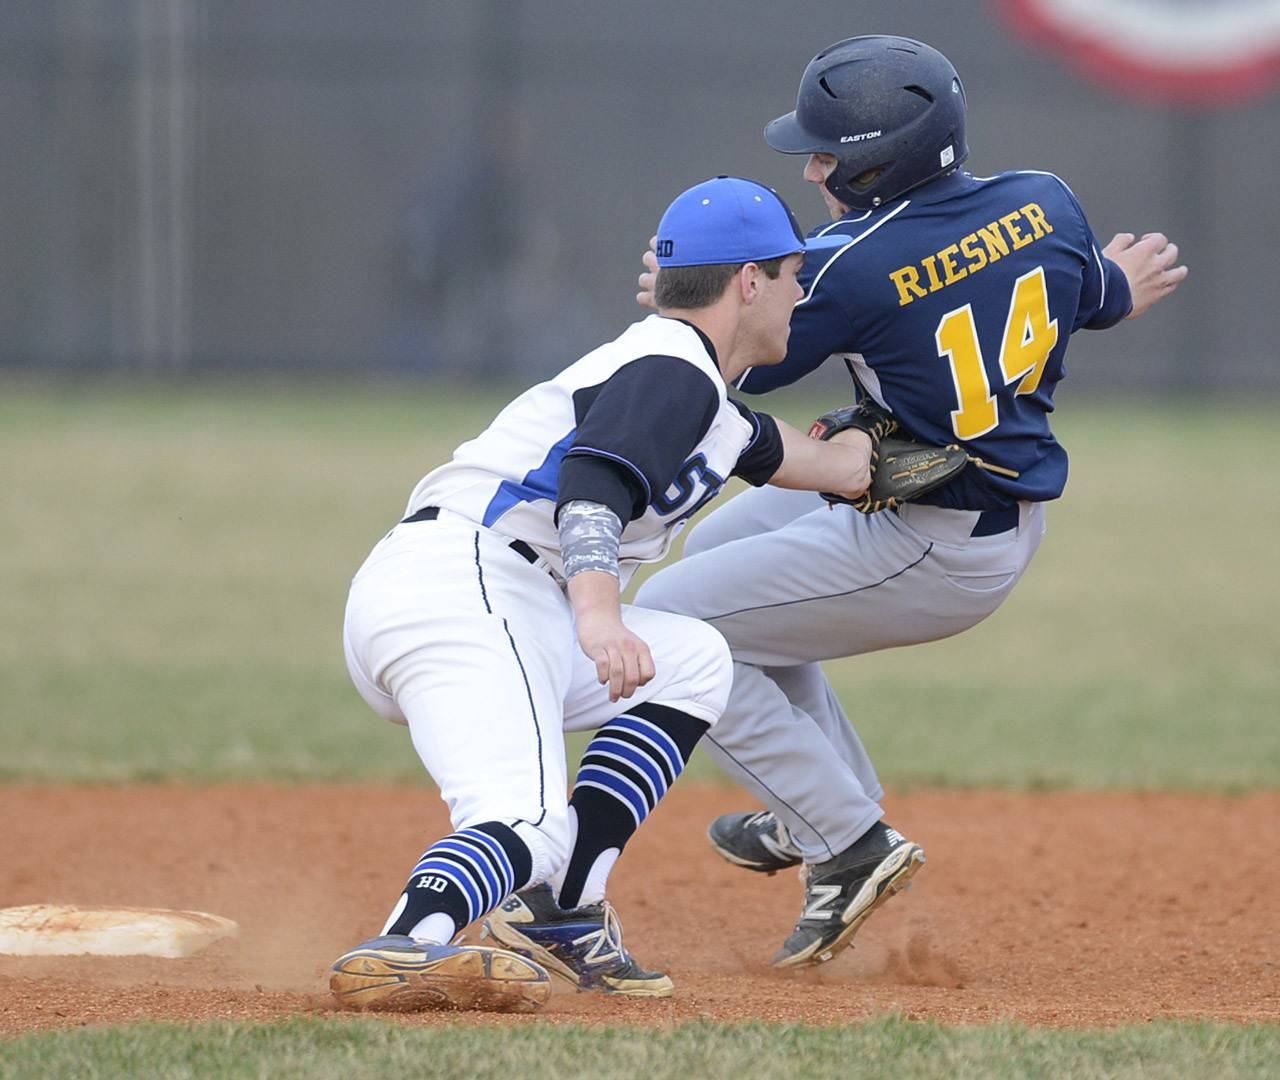 St. Charles North's Zach Mettetal tags out Neuqua Valley's Mike Riesner at second base in the second inning on Friday, April 11.